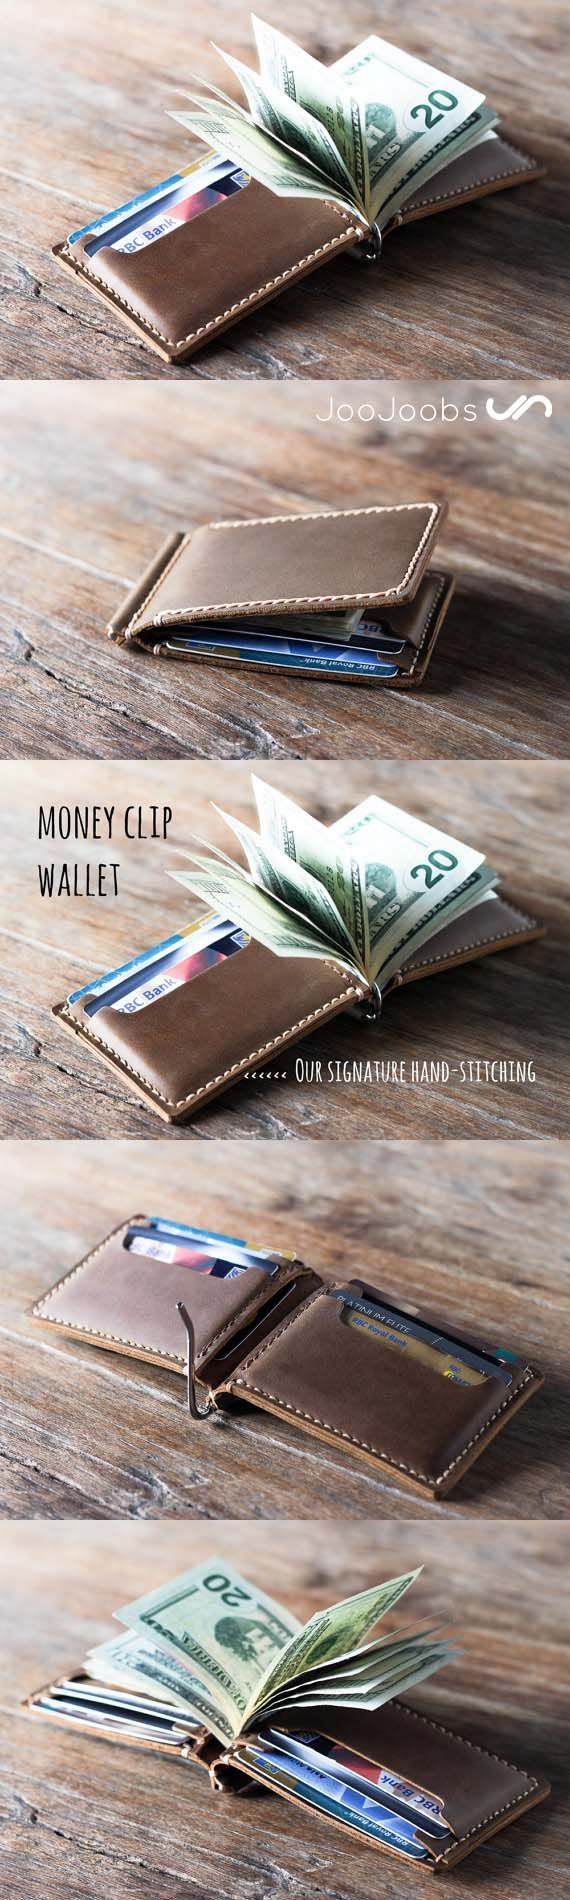 This leather money clip wallet is handmade by the JooJoobs master leathersmith, Noi. Made from full grain distressed leather and waxed nylon thread, this wallet will last a very, very long time. #wallet #handmade #moneyclip